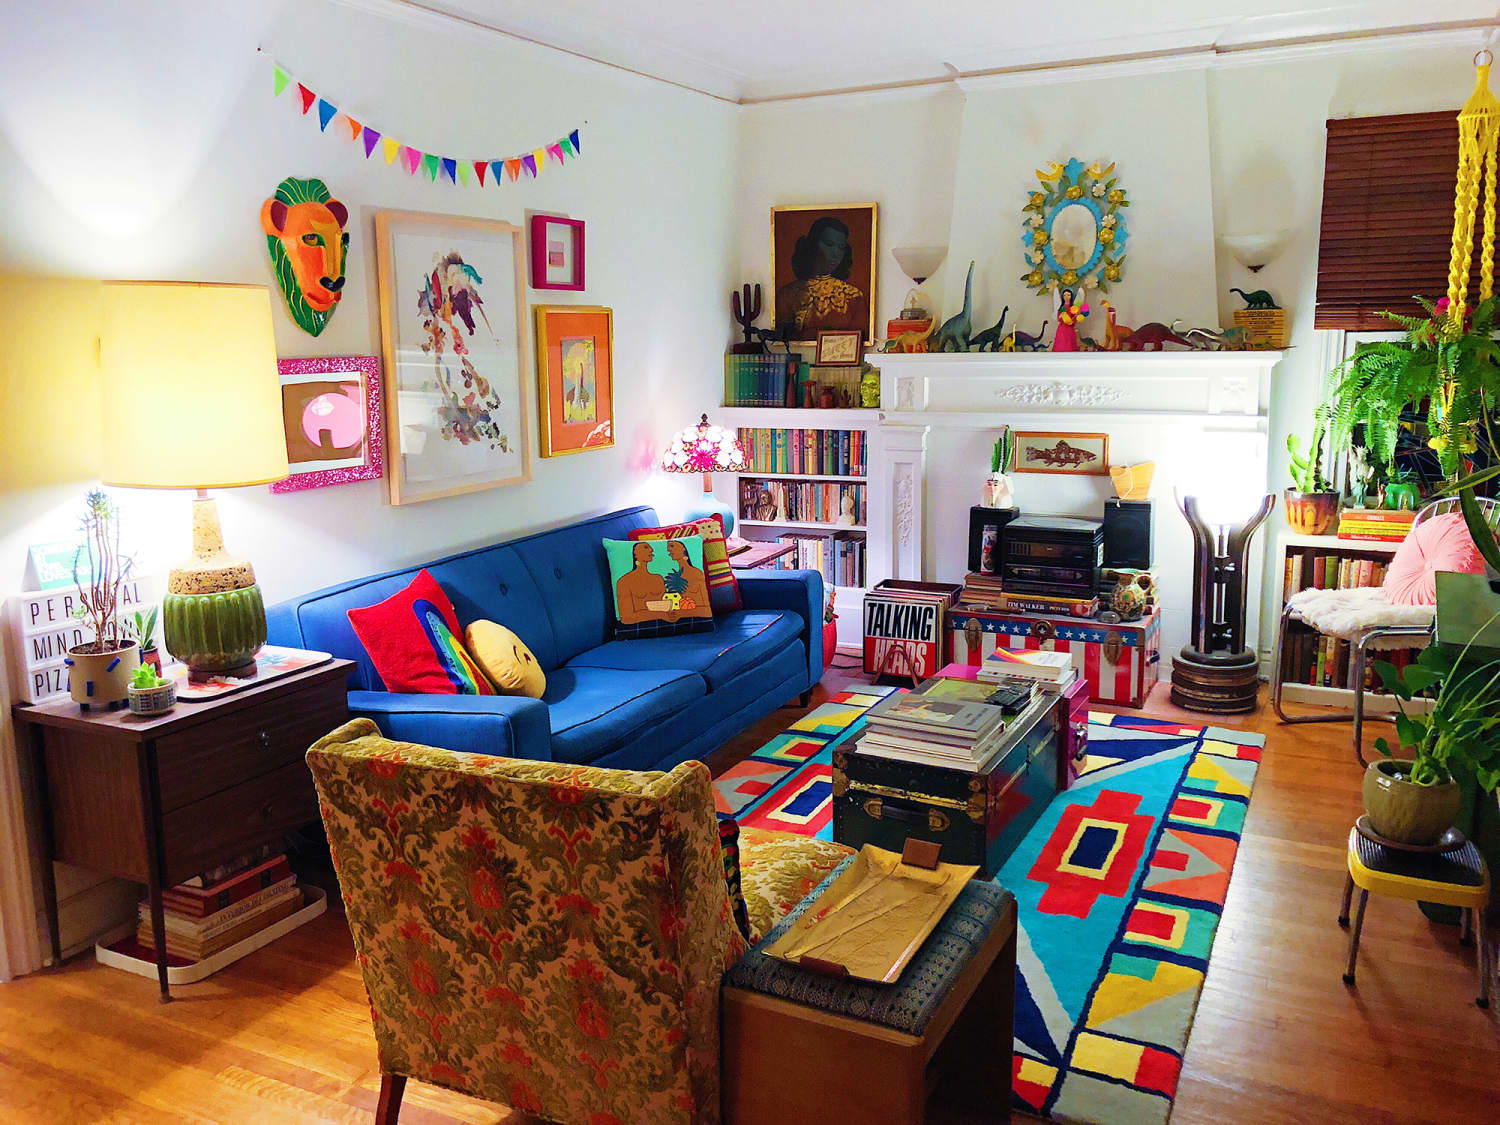 This Rainbow Rental Has Weird '70s Lamps, Plastic Dinosaurs, and More Patterns Than You Can Count